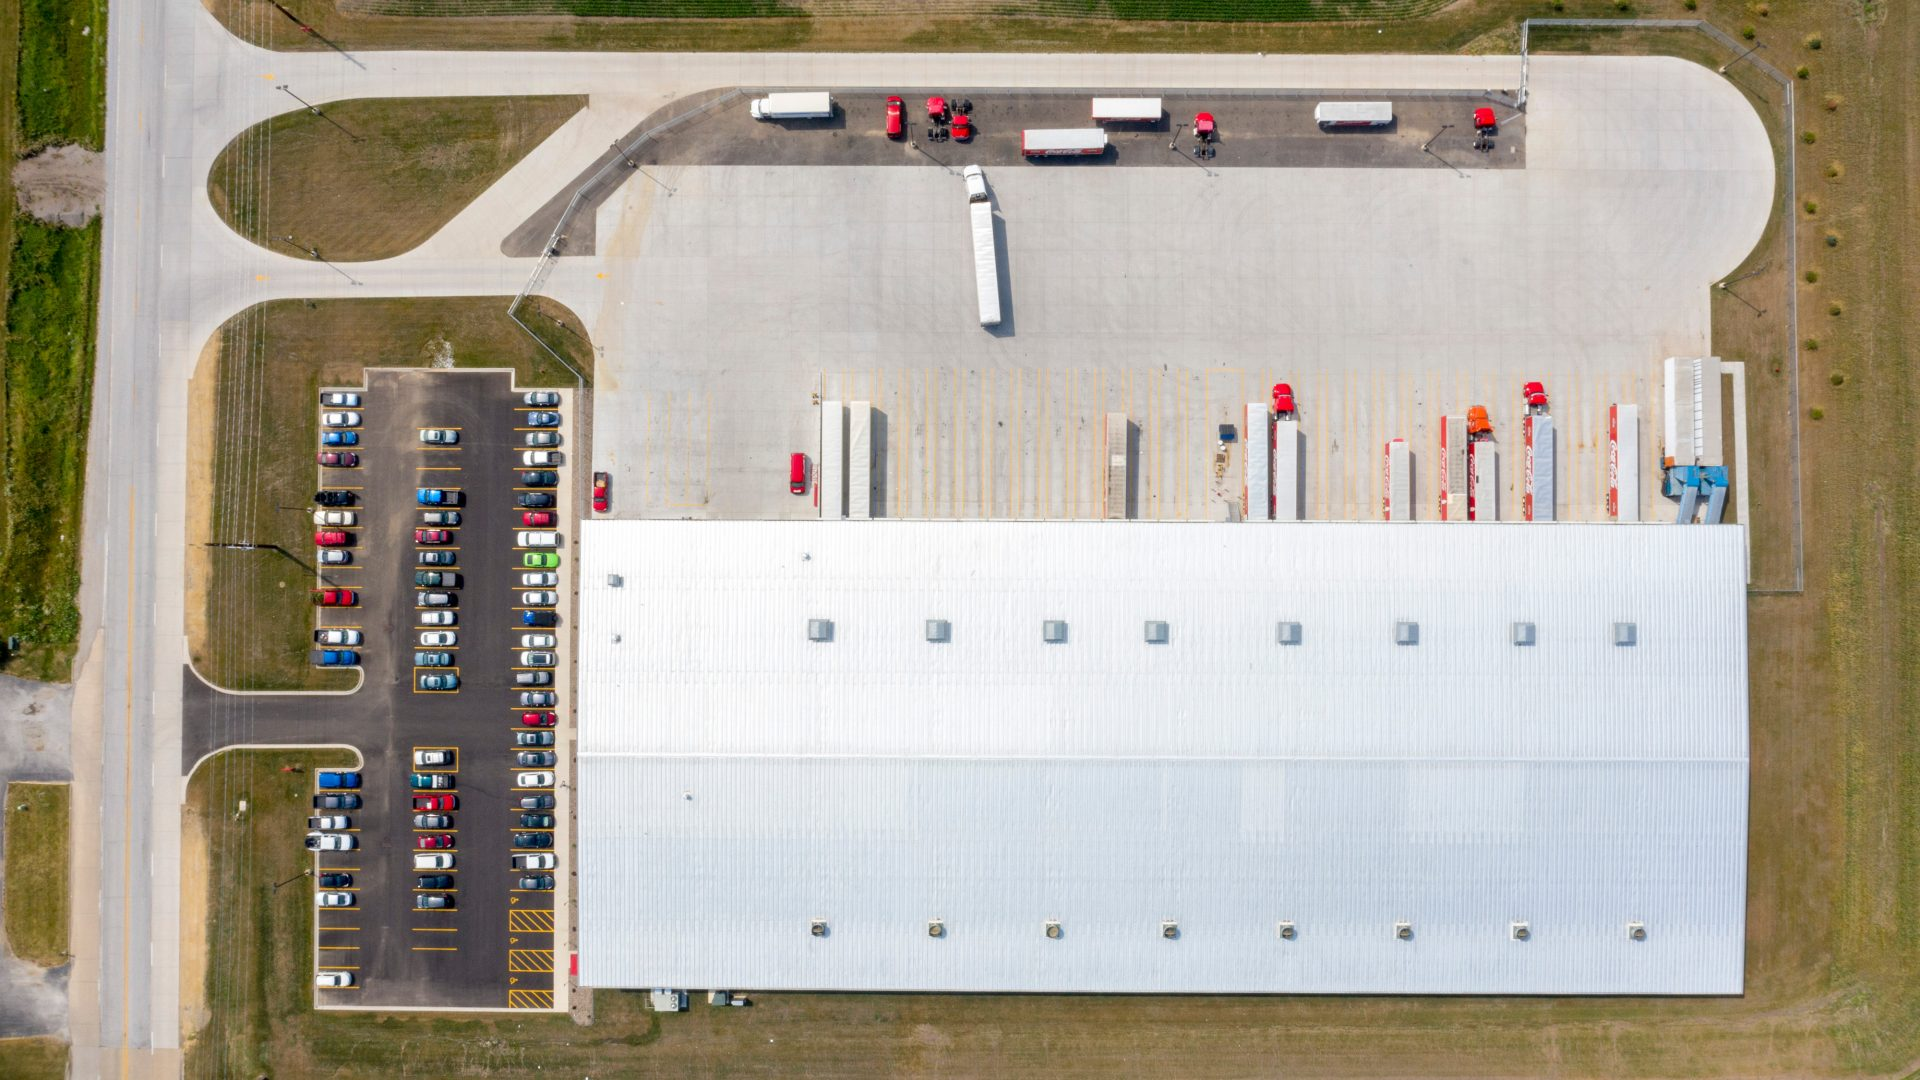 Overhead drone view of the warehouse